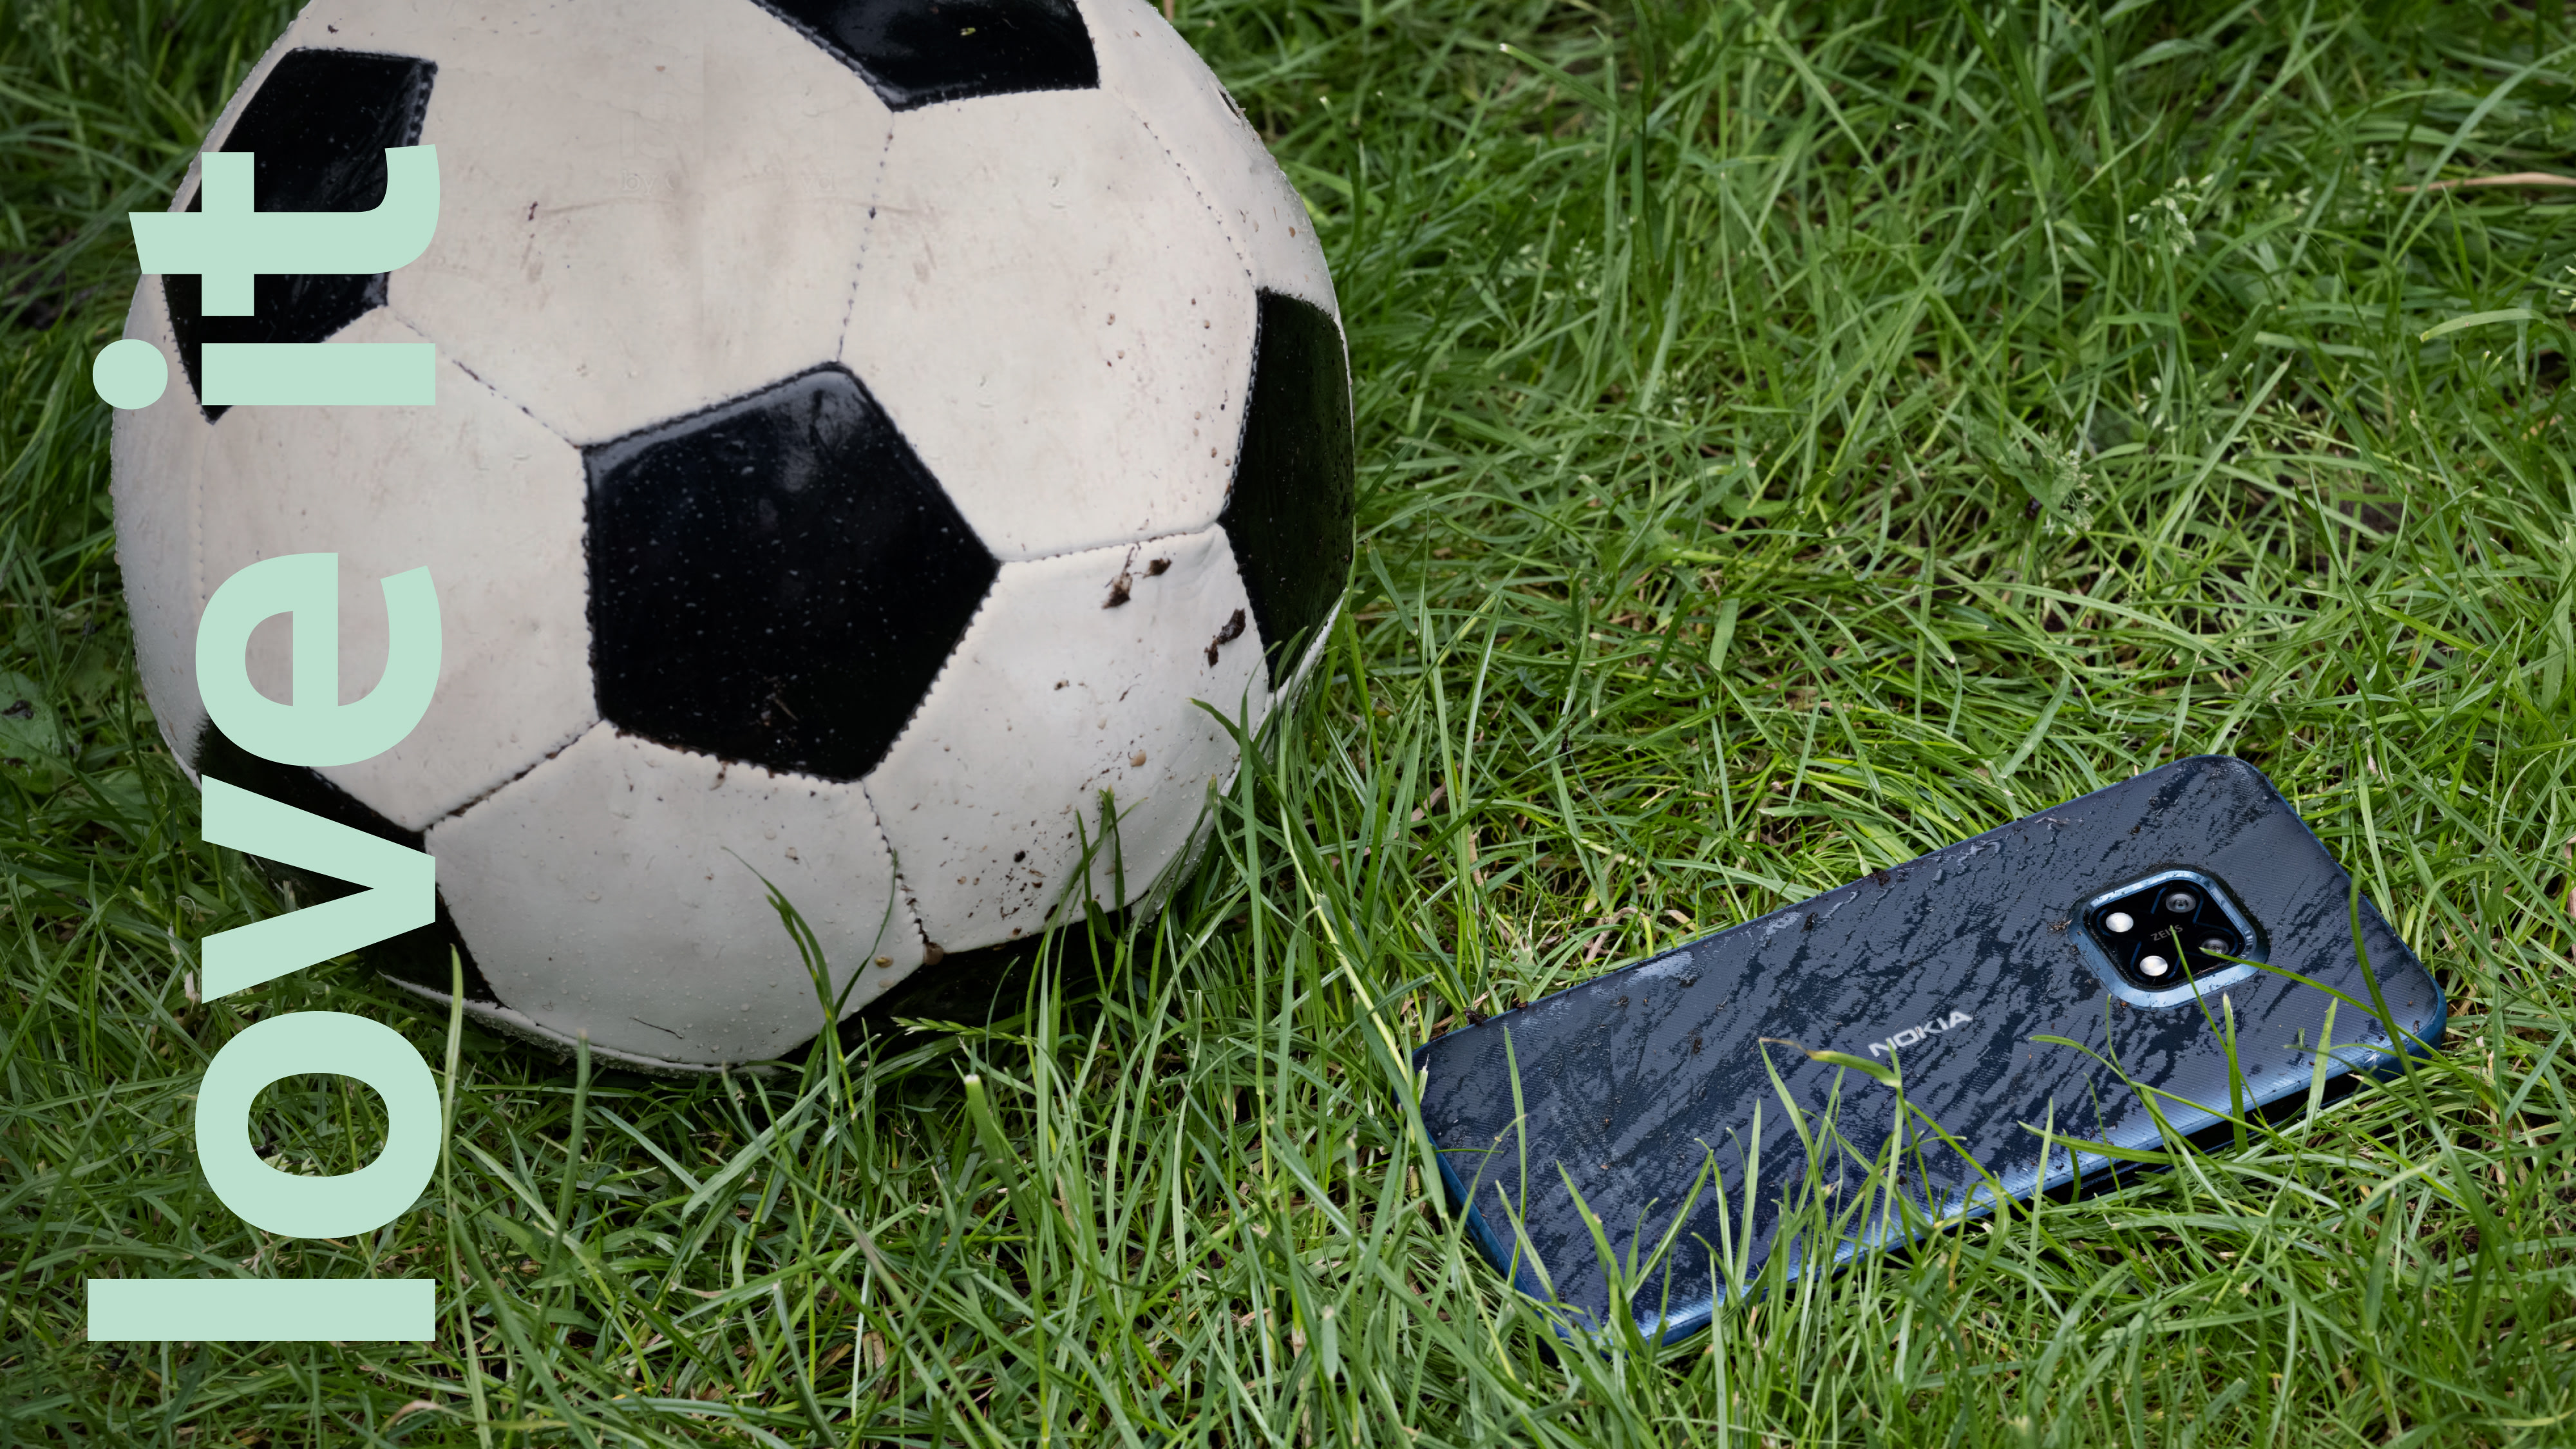 A football and a robust Nokia XR20 smartphone on the grass.